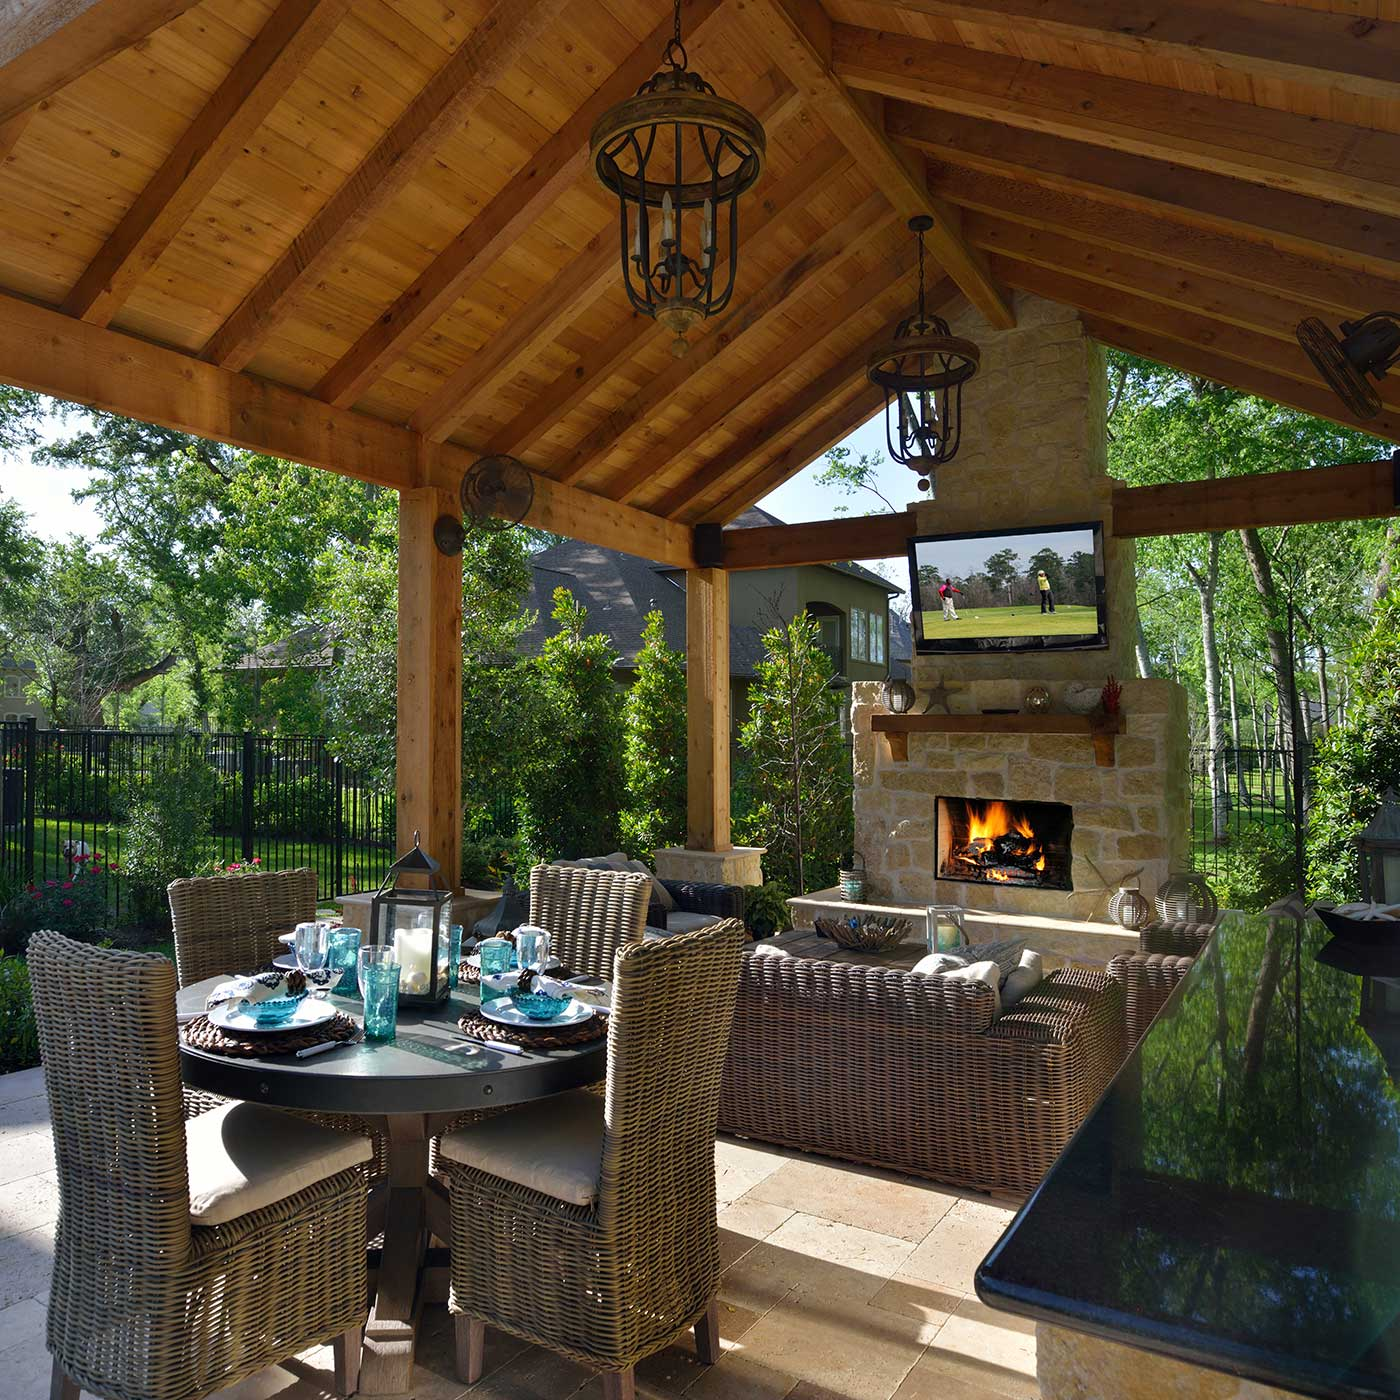 Houston Outdoor Living Space Contractor | Outdoor Elements on Garden Living Space id=35897